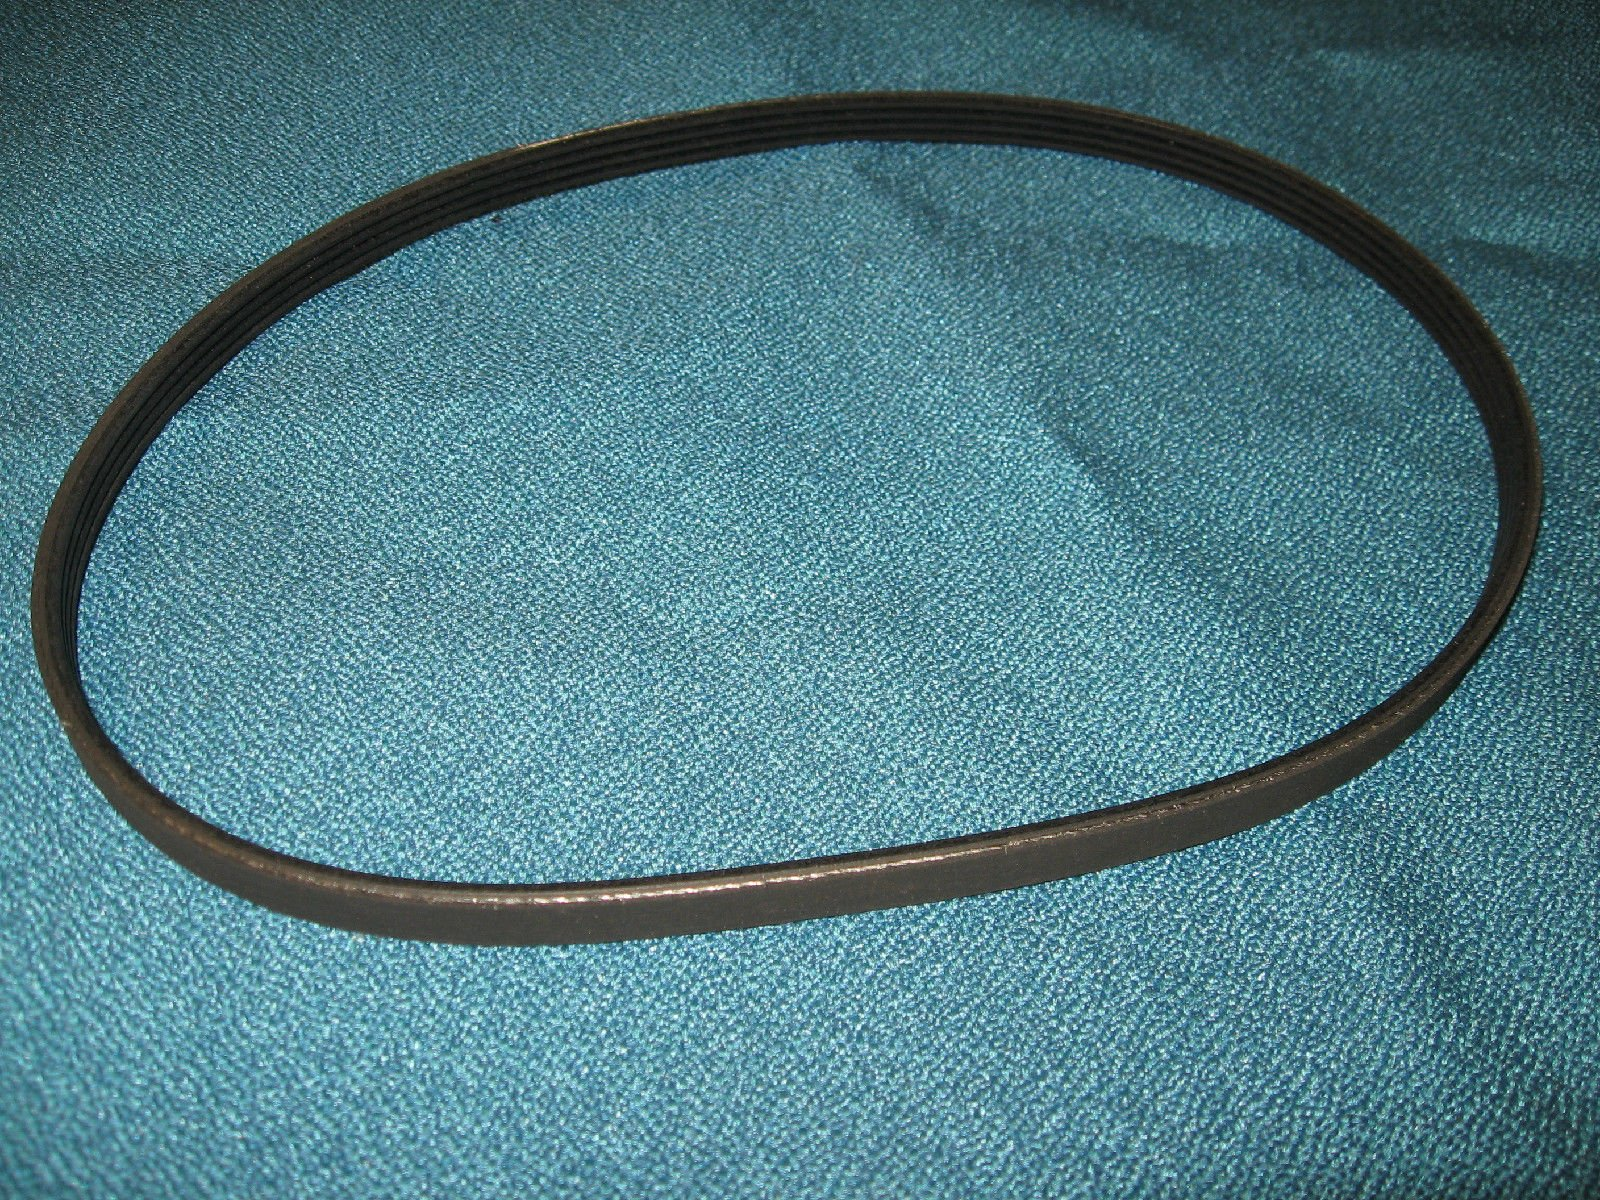 124.32607 NEW DRIVE BELT MADE IN USA FOR SEARS CRAFTSMAN BAND SAW 124.32607